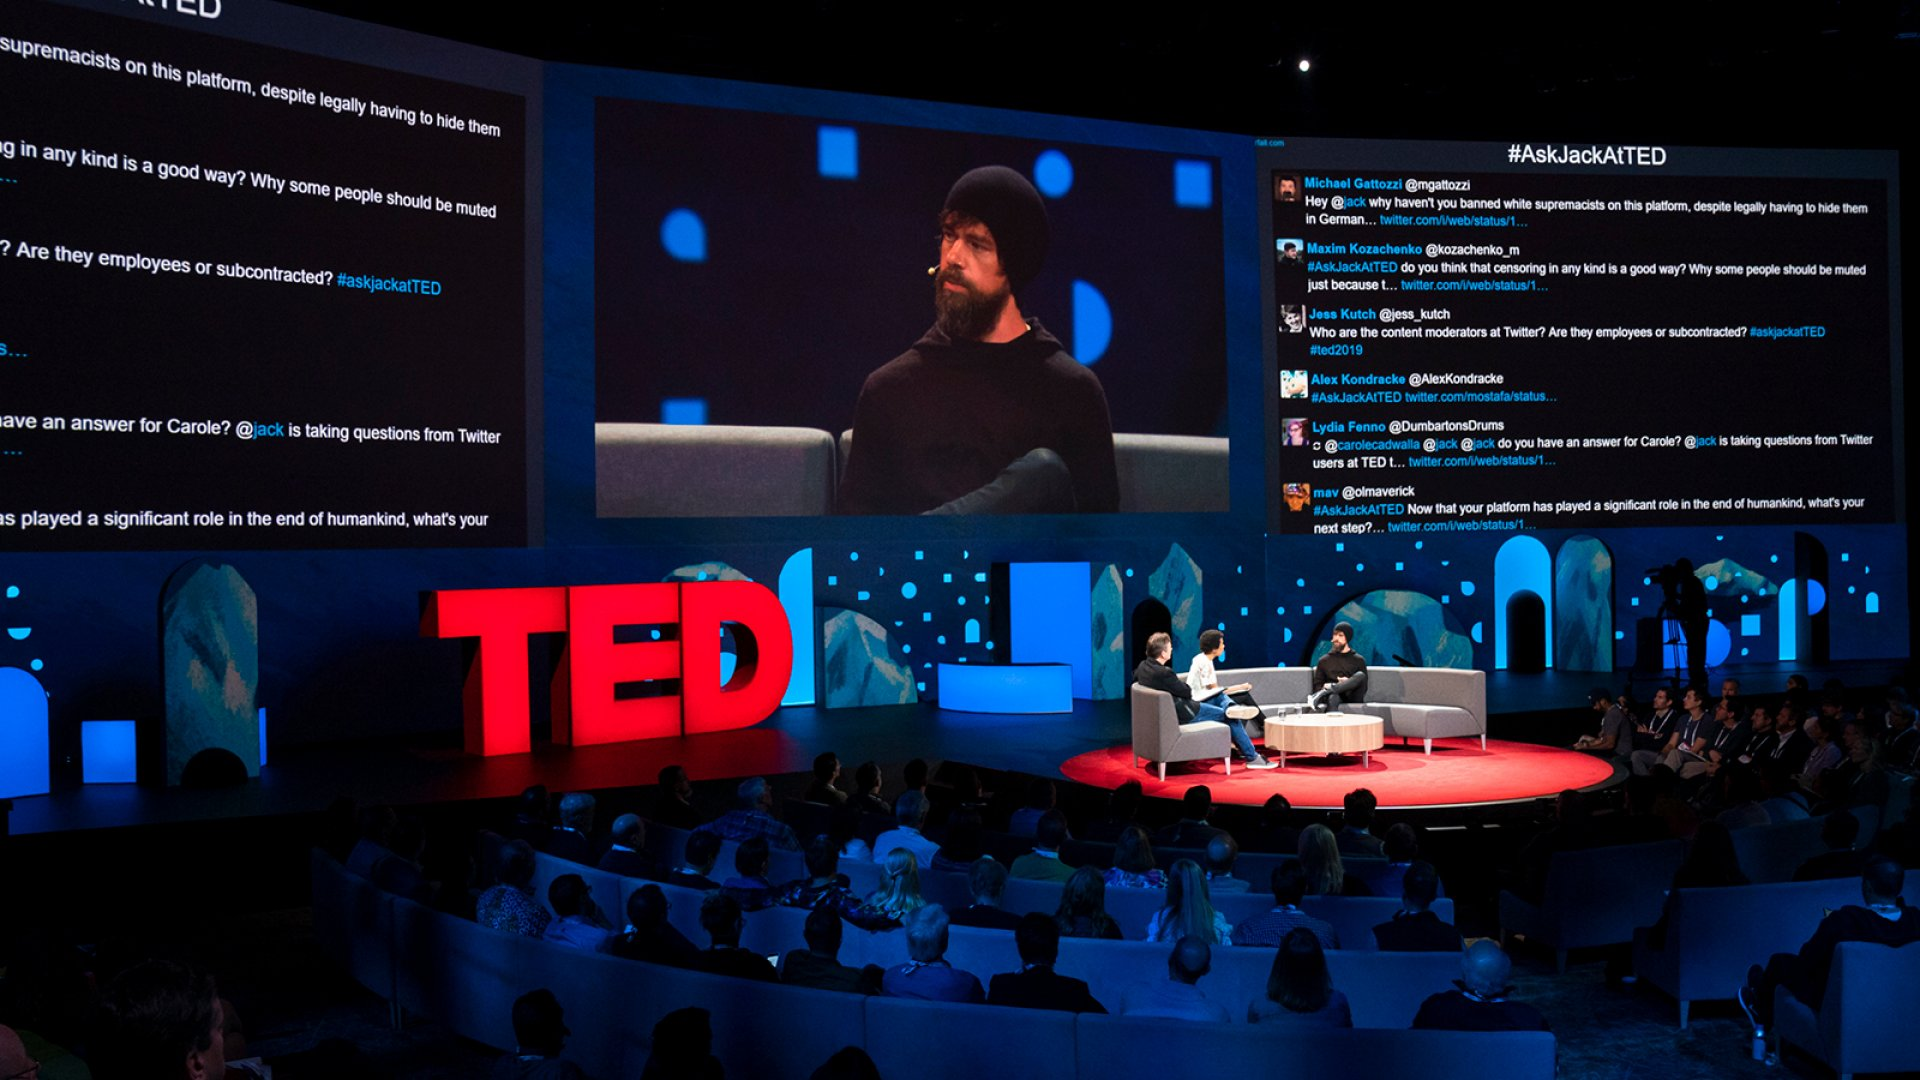 At TED, CEO Jack Dorsey Shared His Regret About Twitter